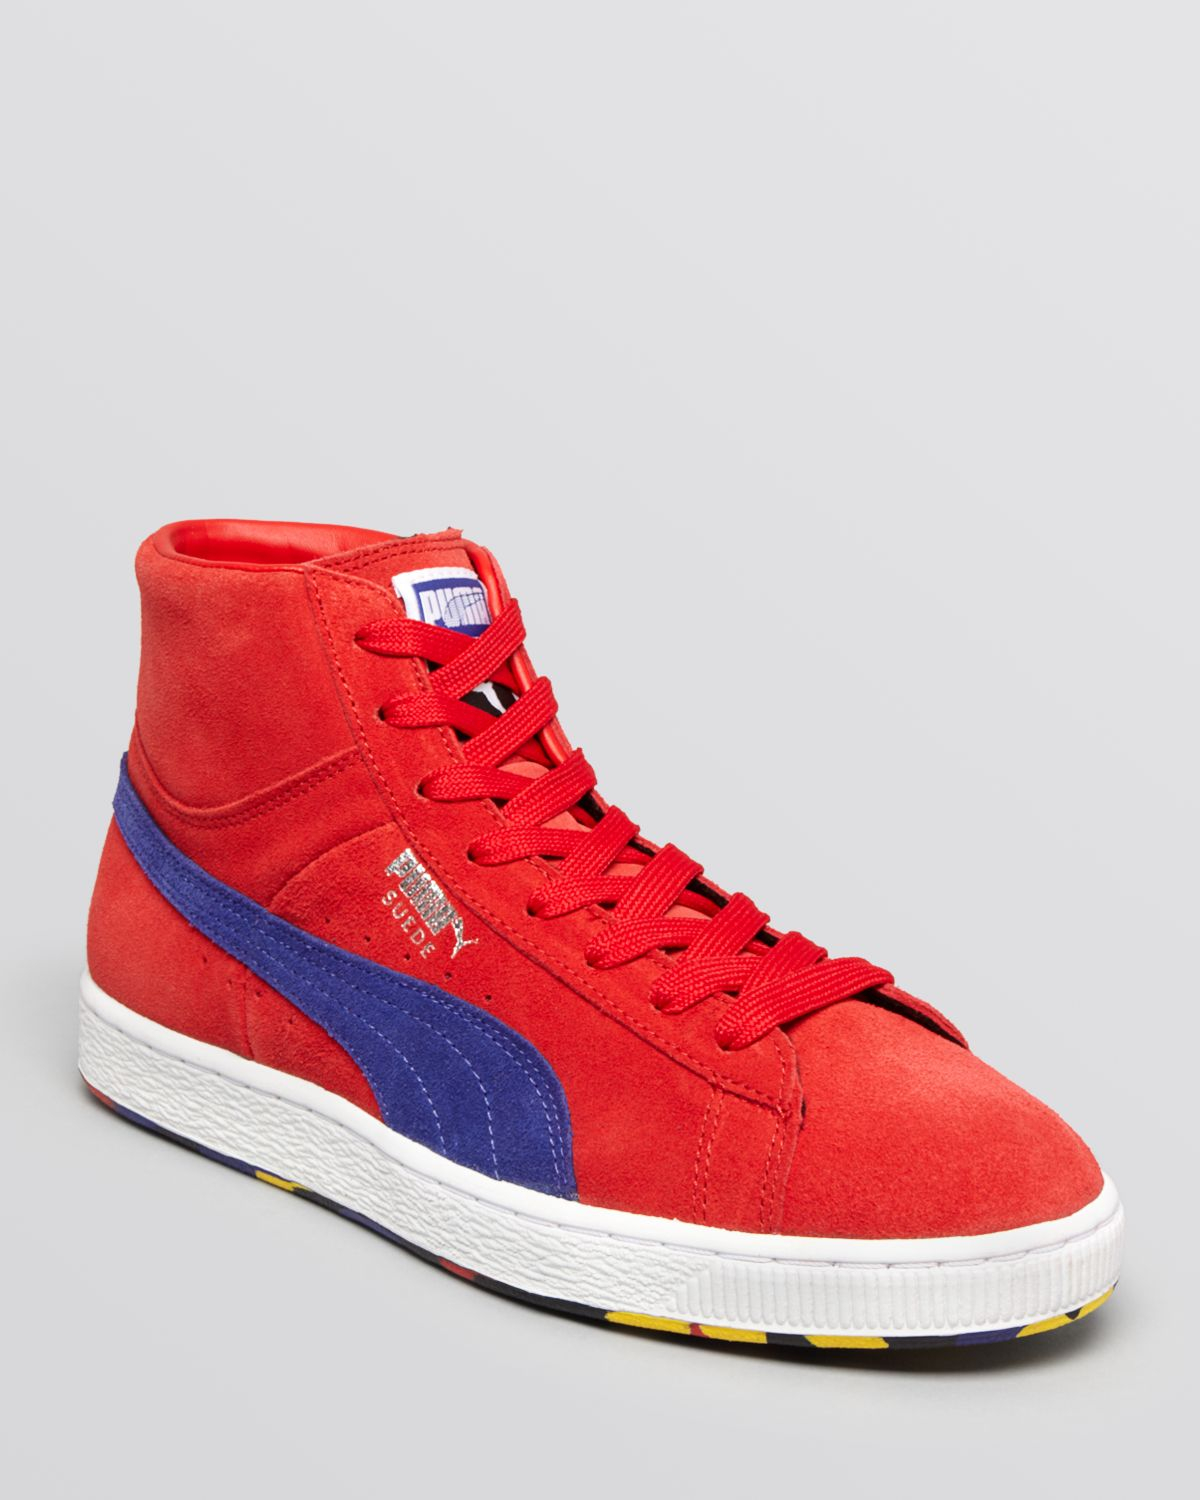 19ddcaa1264 Lyst - PUMA Suede Classic Rubber Mix Mid Sneakers in Red for Men